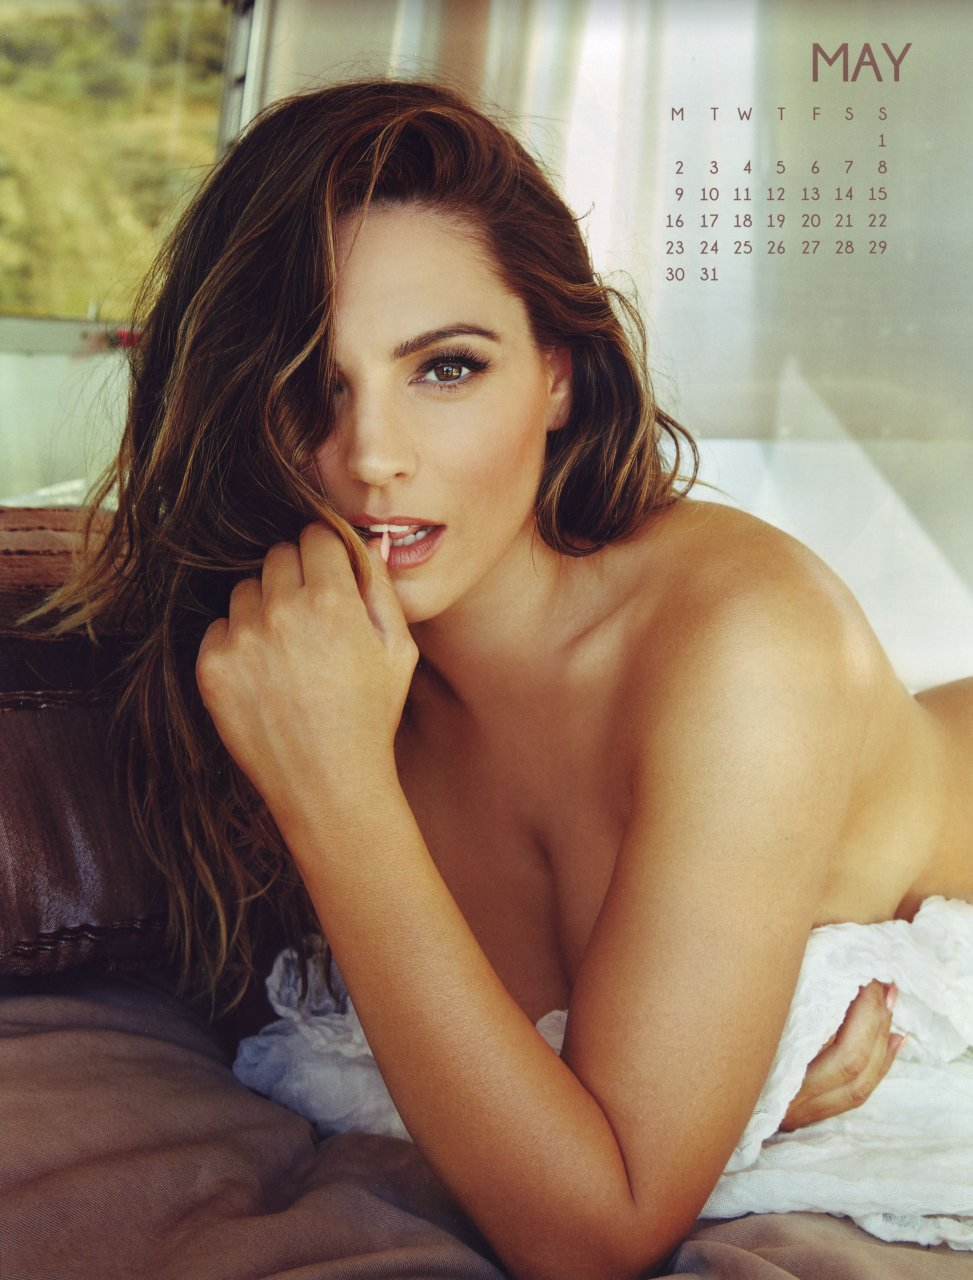 Forum on this topic: Alicia Silverstone Sex Tape Video Leaked By Sony Hackers, kelly-brook-sexy-99-photos/